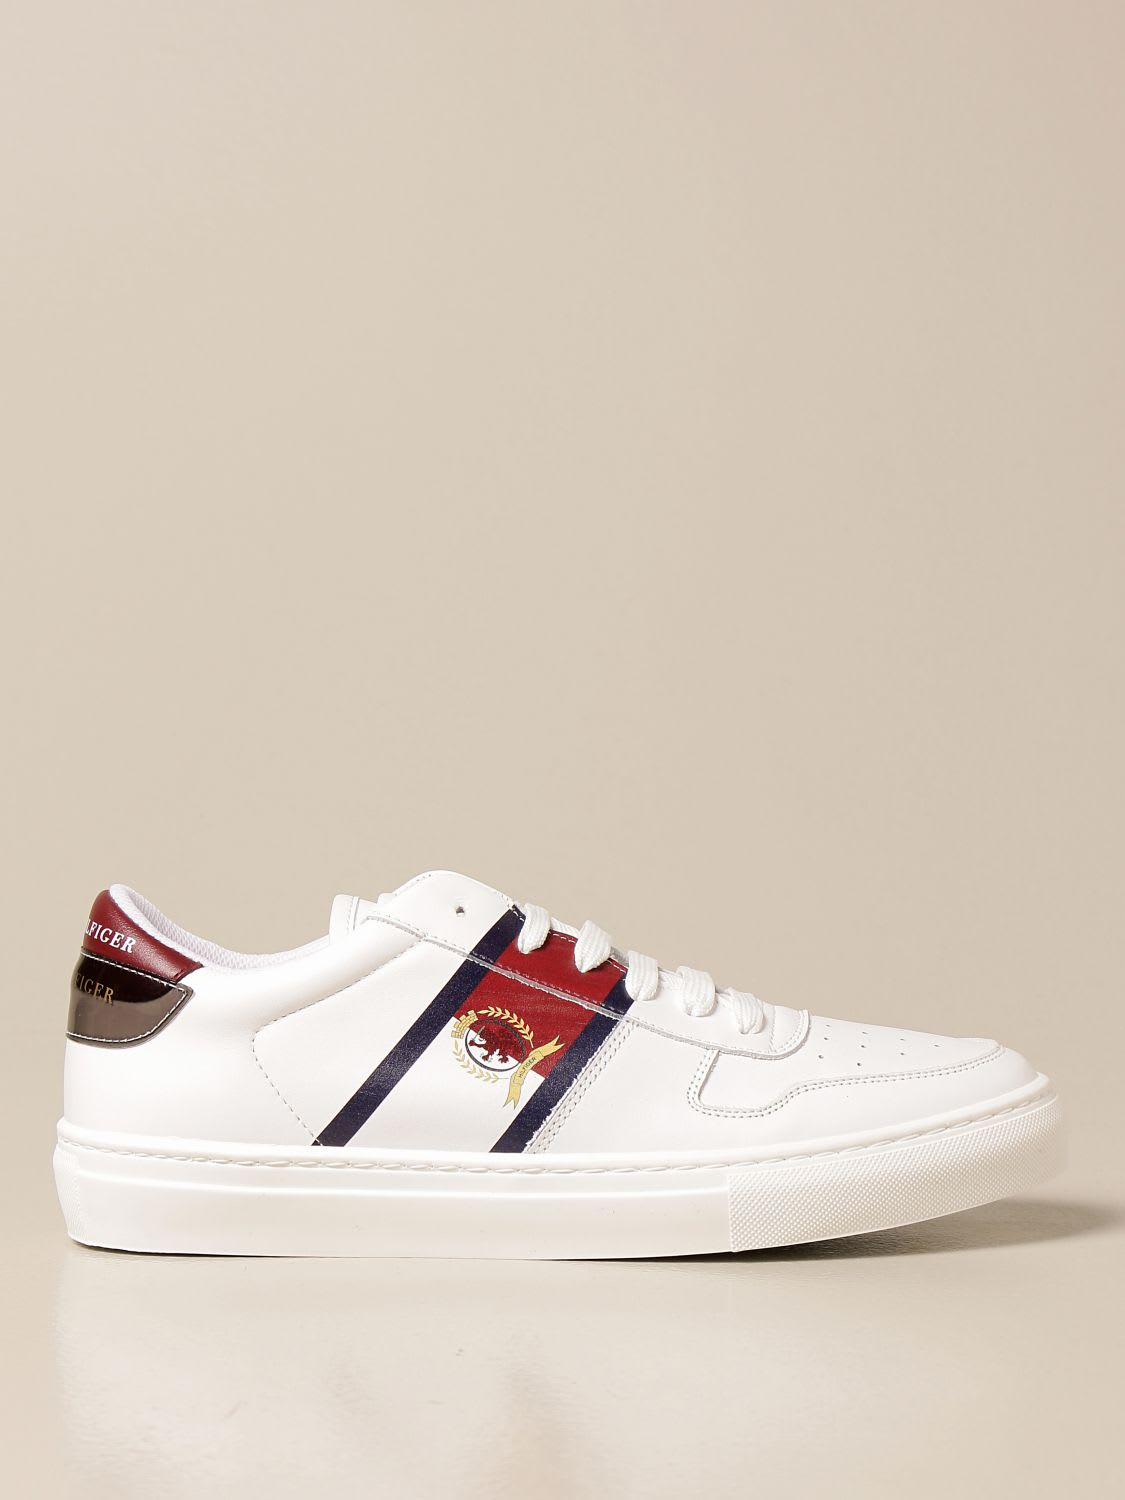 Hilfiger Collection Sneakers Shoes Men Hilfiger Collection